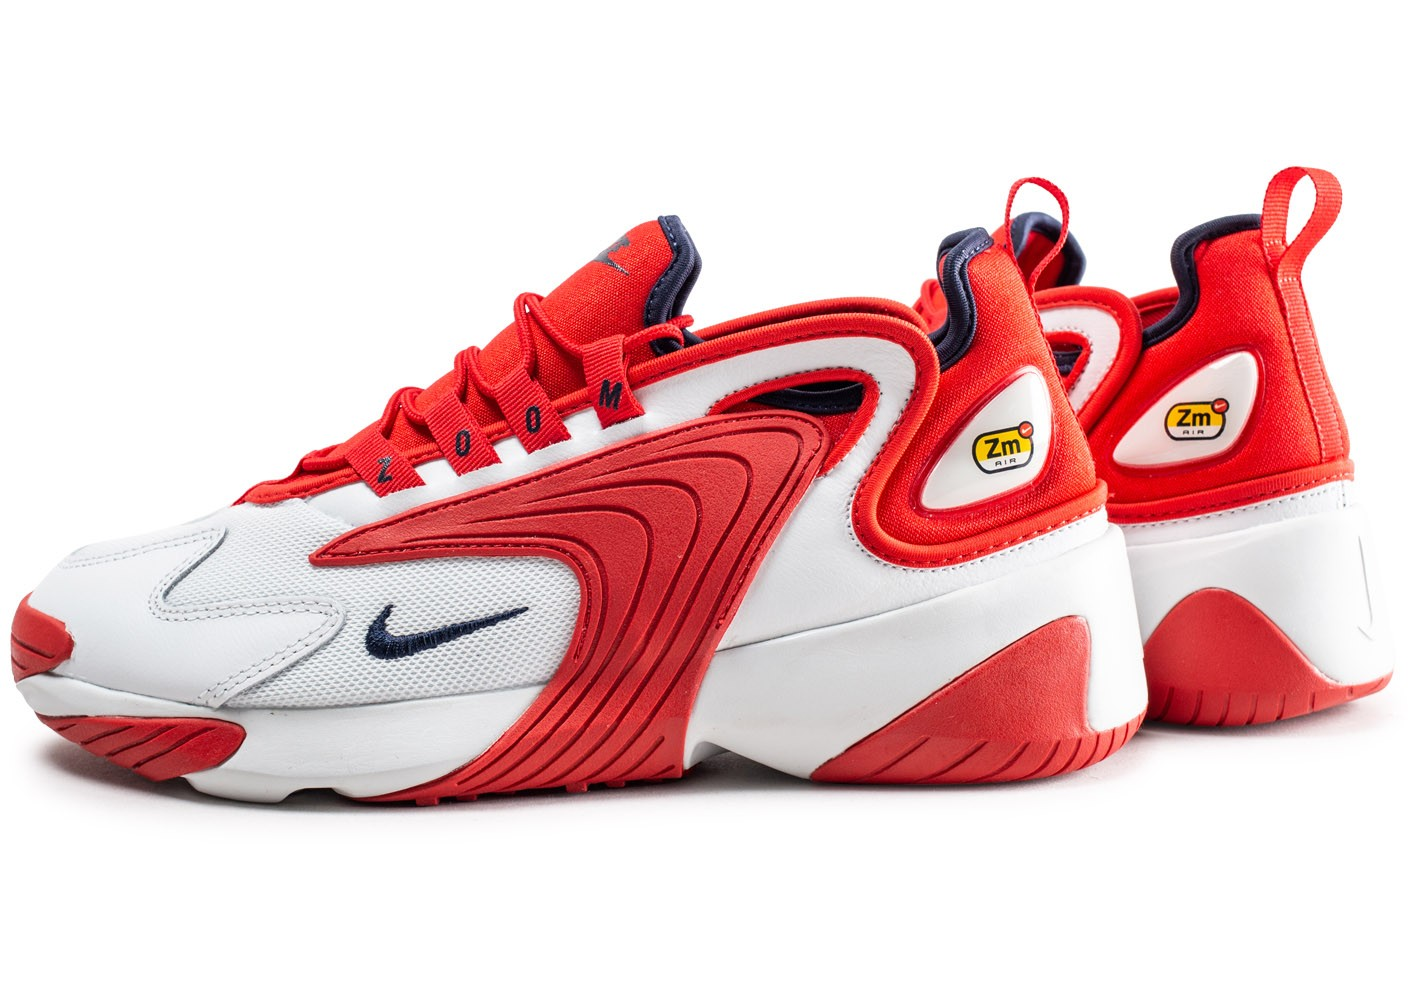 Nike Zoom 2K blanche et rouge - Chaussures Baskets homme ...